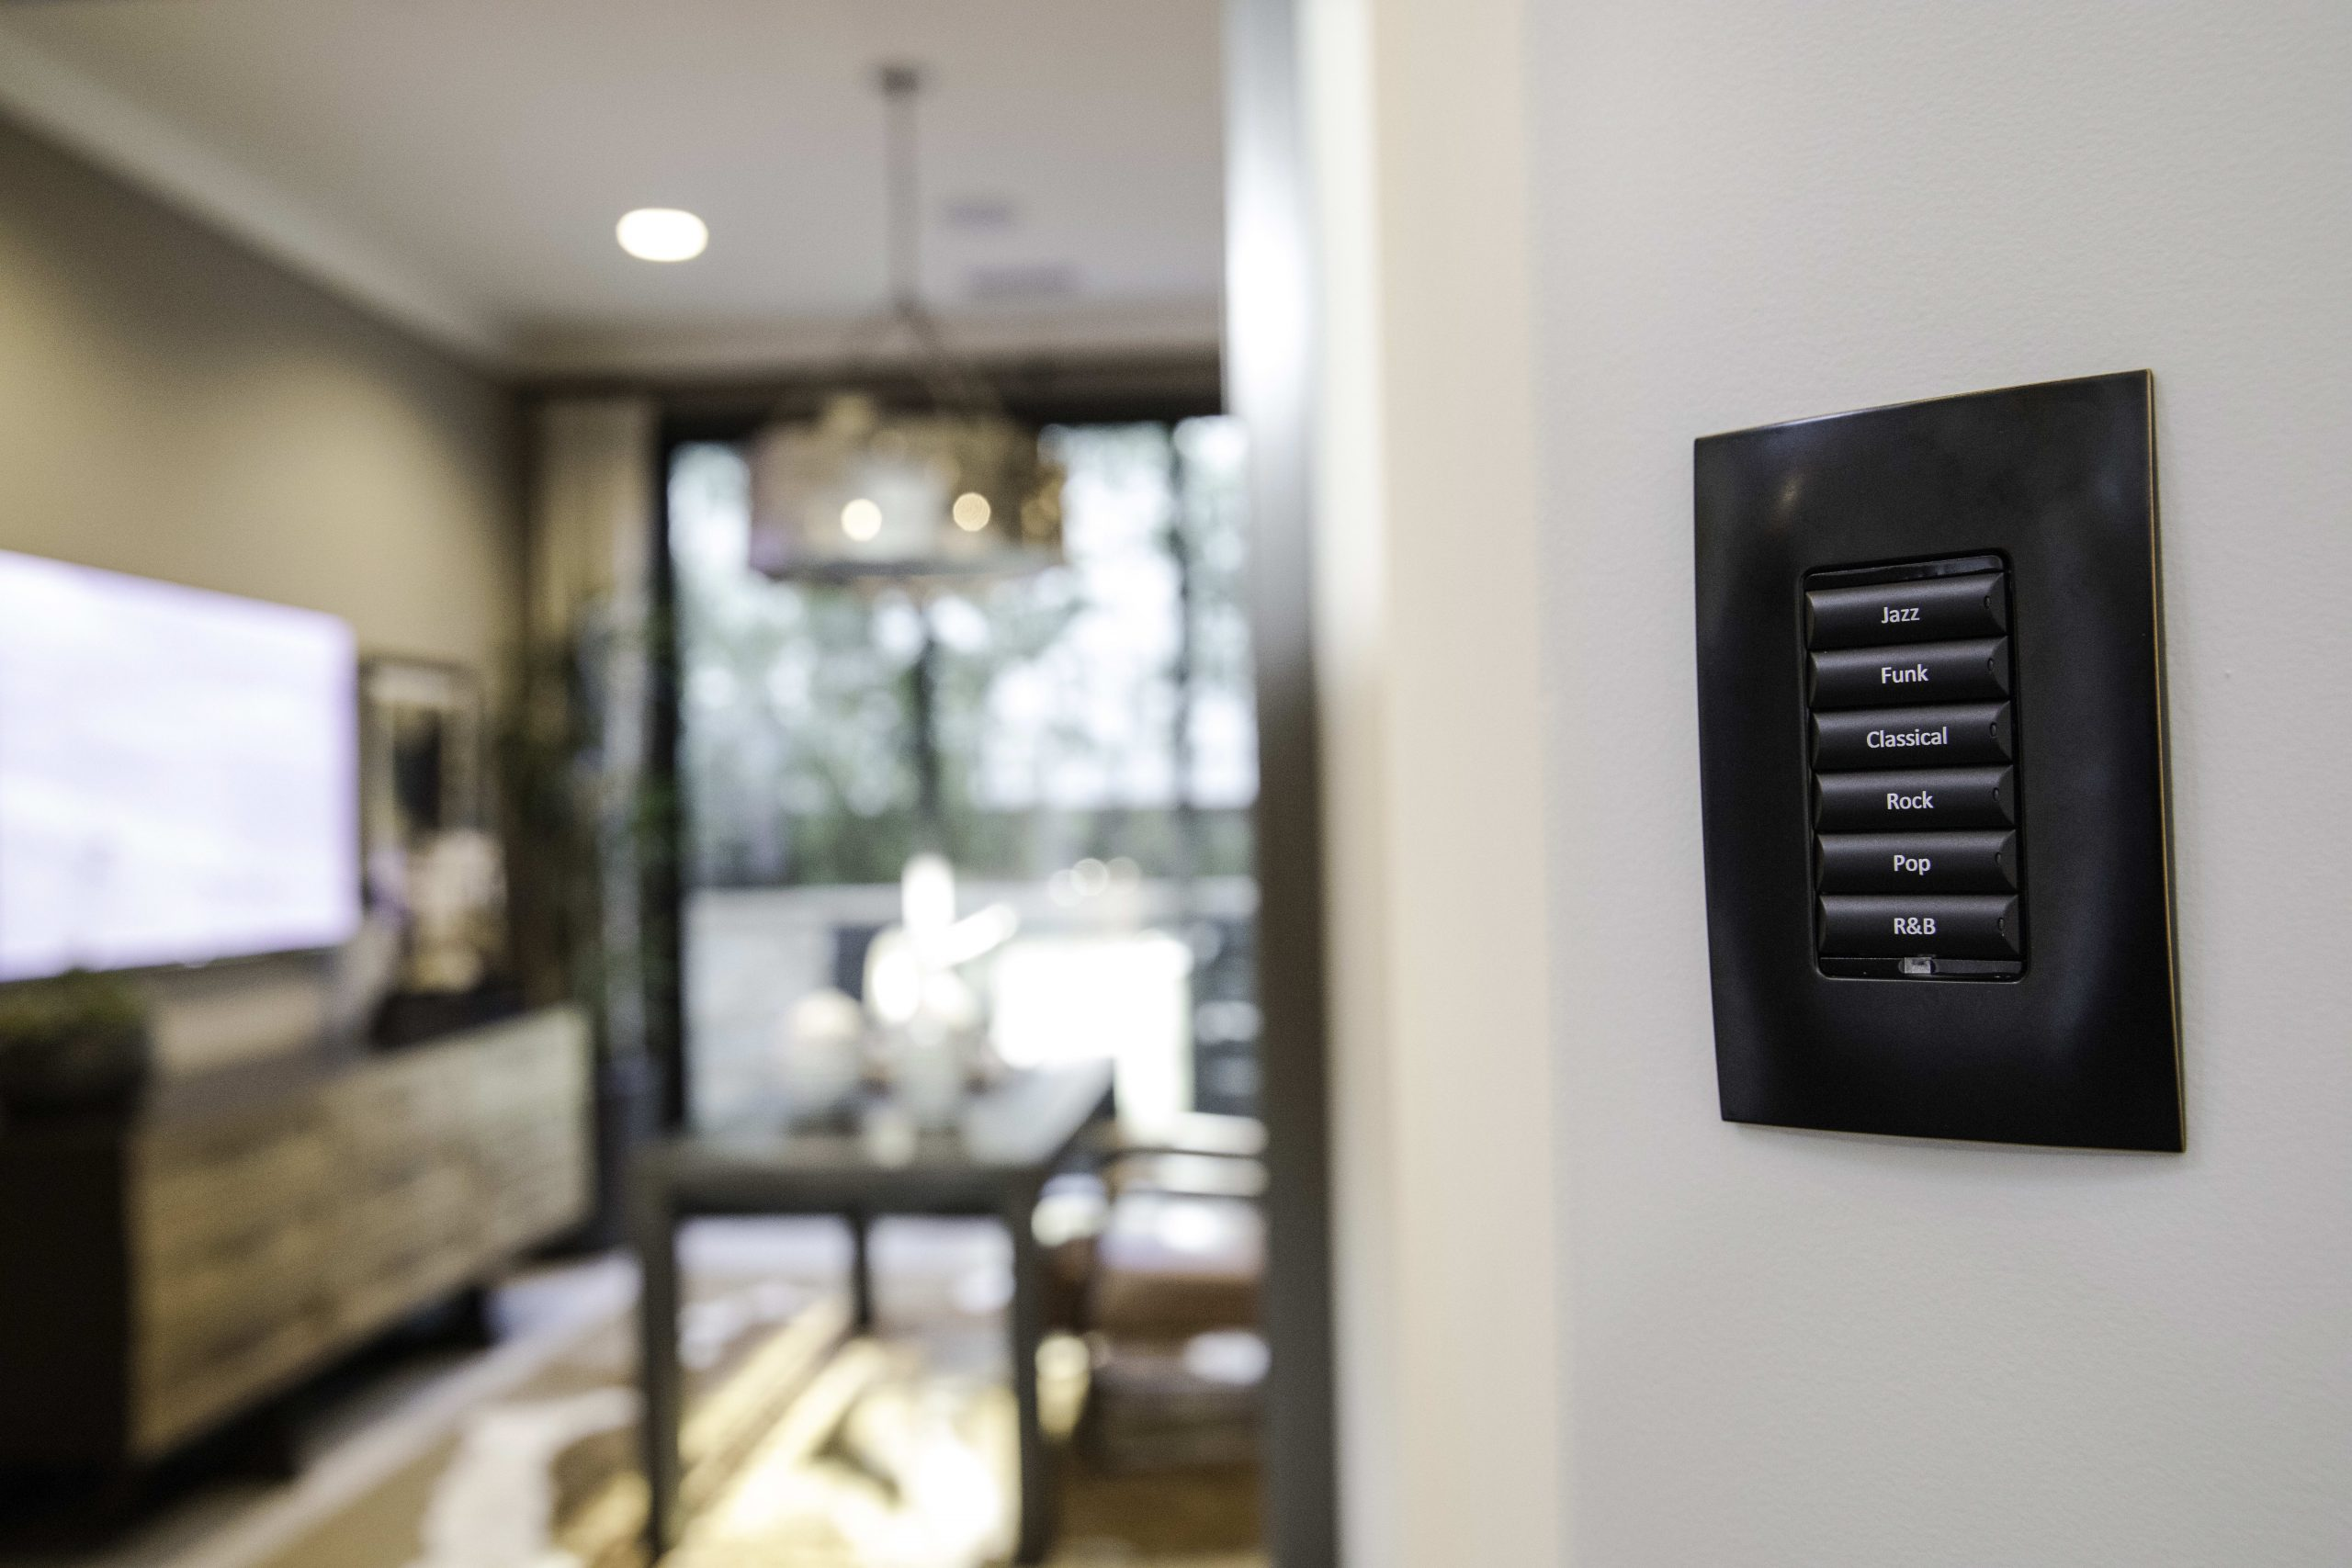 keypad controls for your smart home